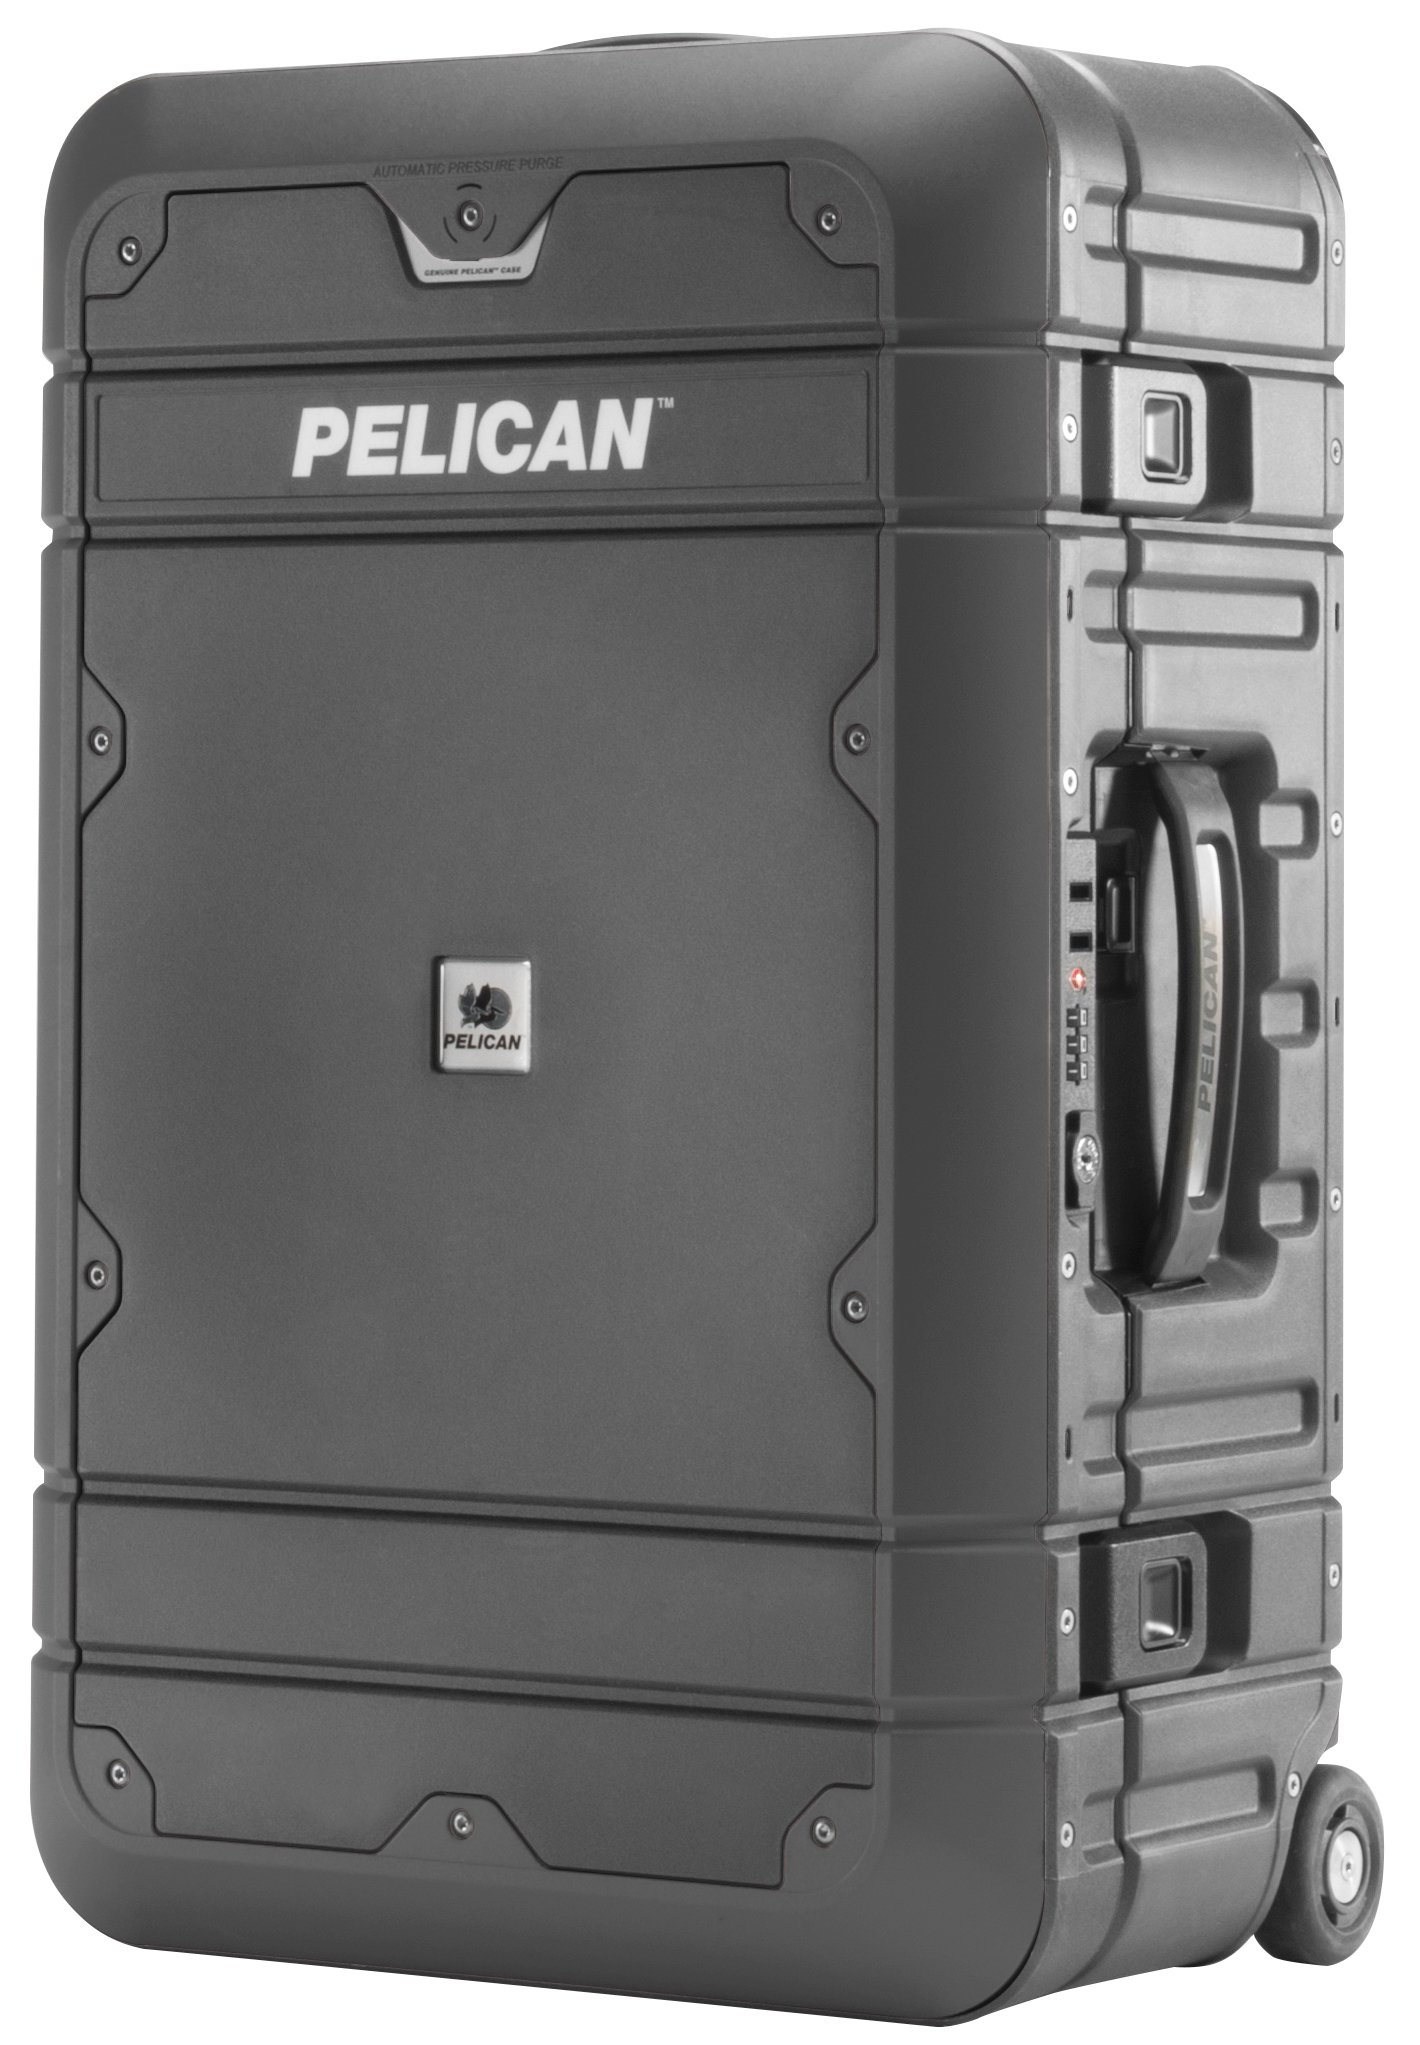 Pelican Elite Luggage   Carry-On with Enhanced Travel System (EL22-22 inch) - Grey/Black by Pelican